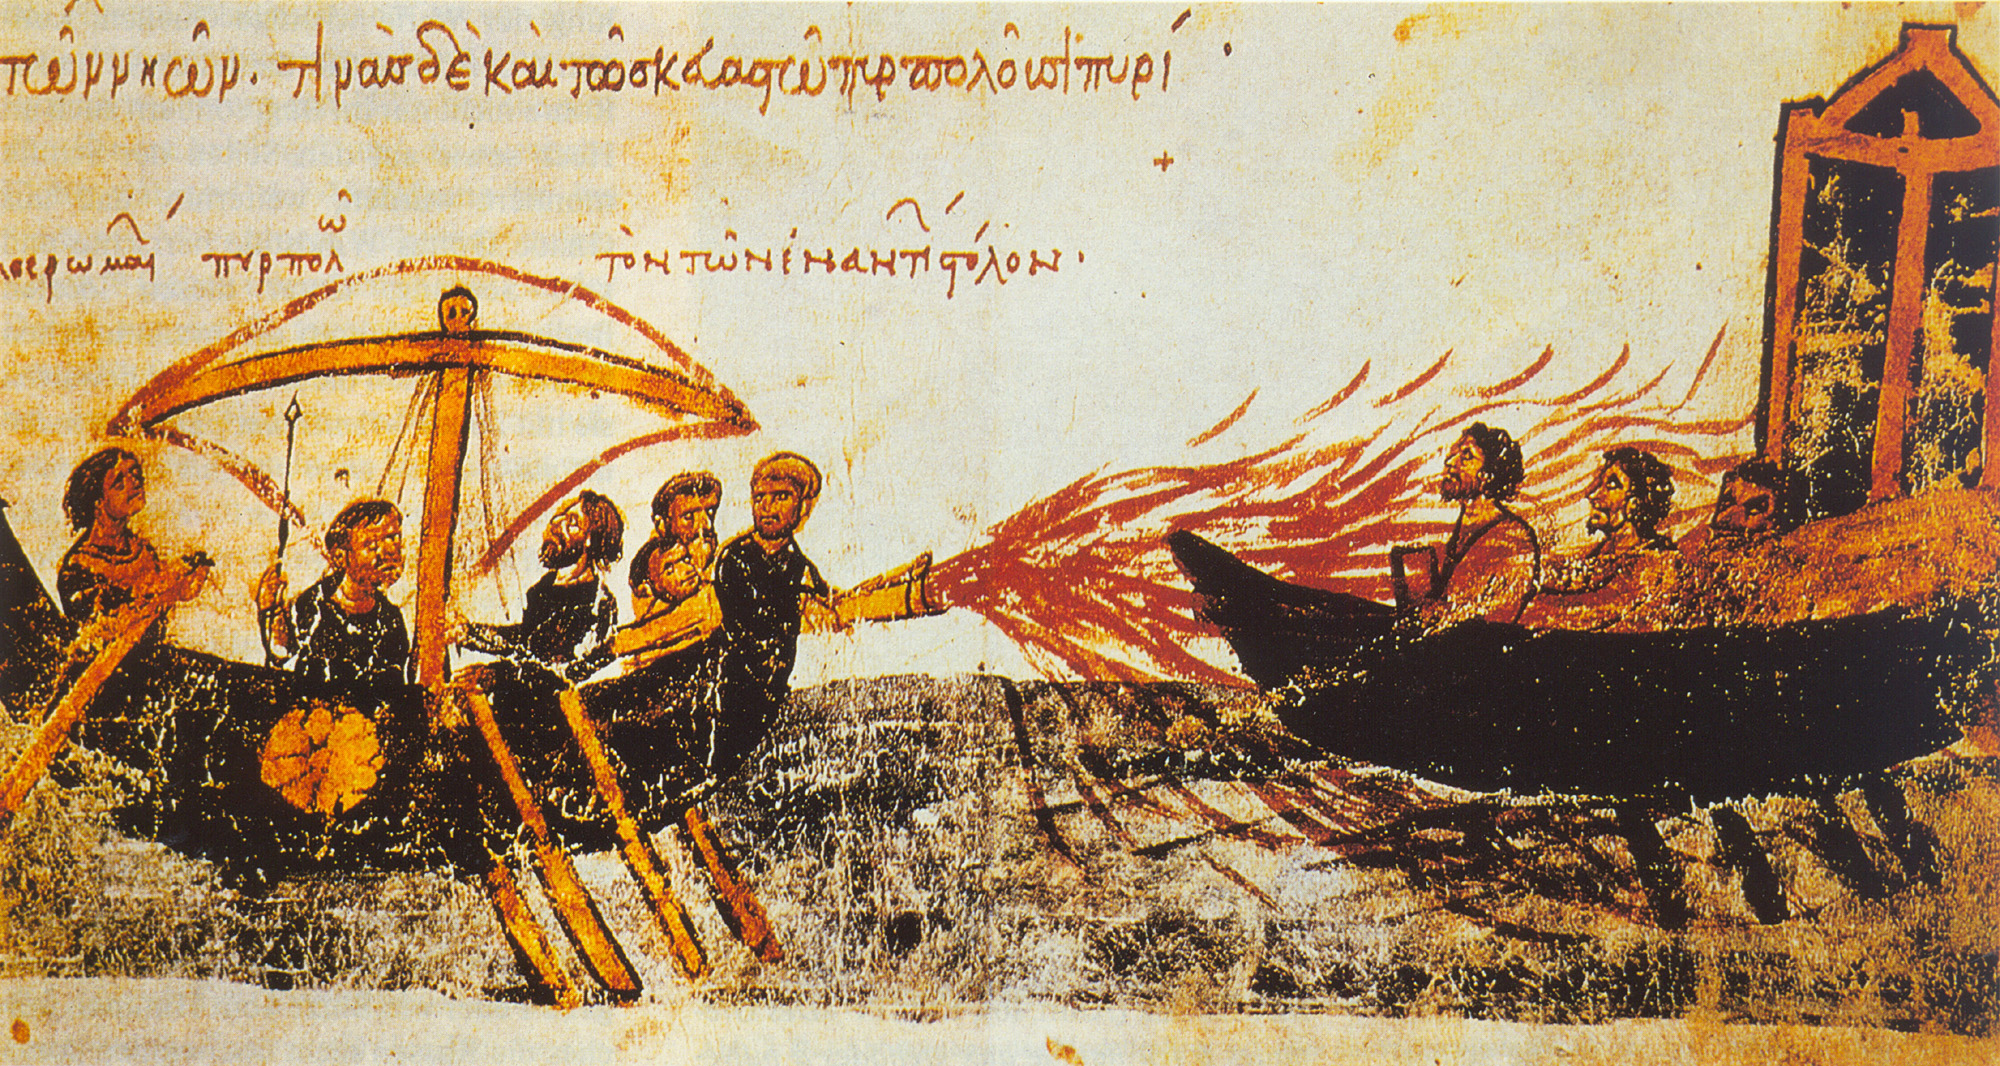 http://upload.wikimedia.org/wikipedia/commons/archive/f/f7/20110914132051%21Greekfire-madridskylitzes1.jpg